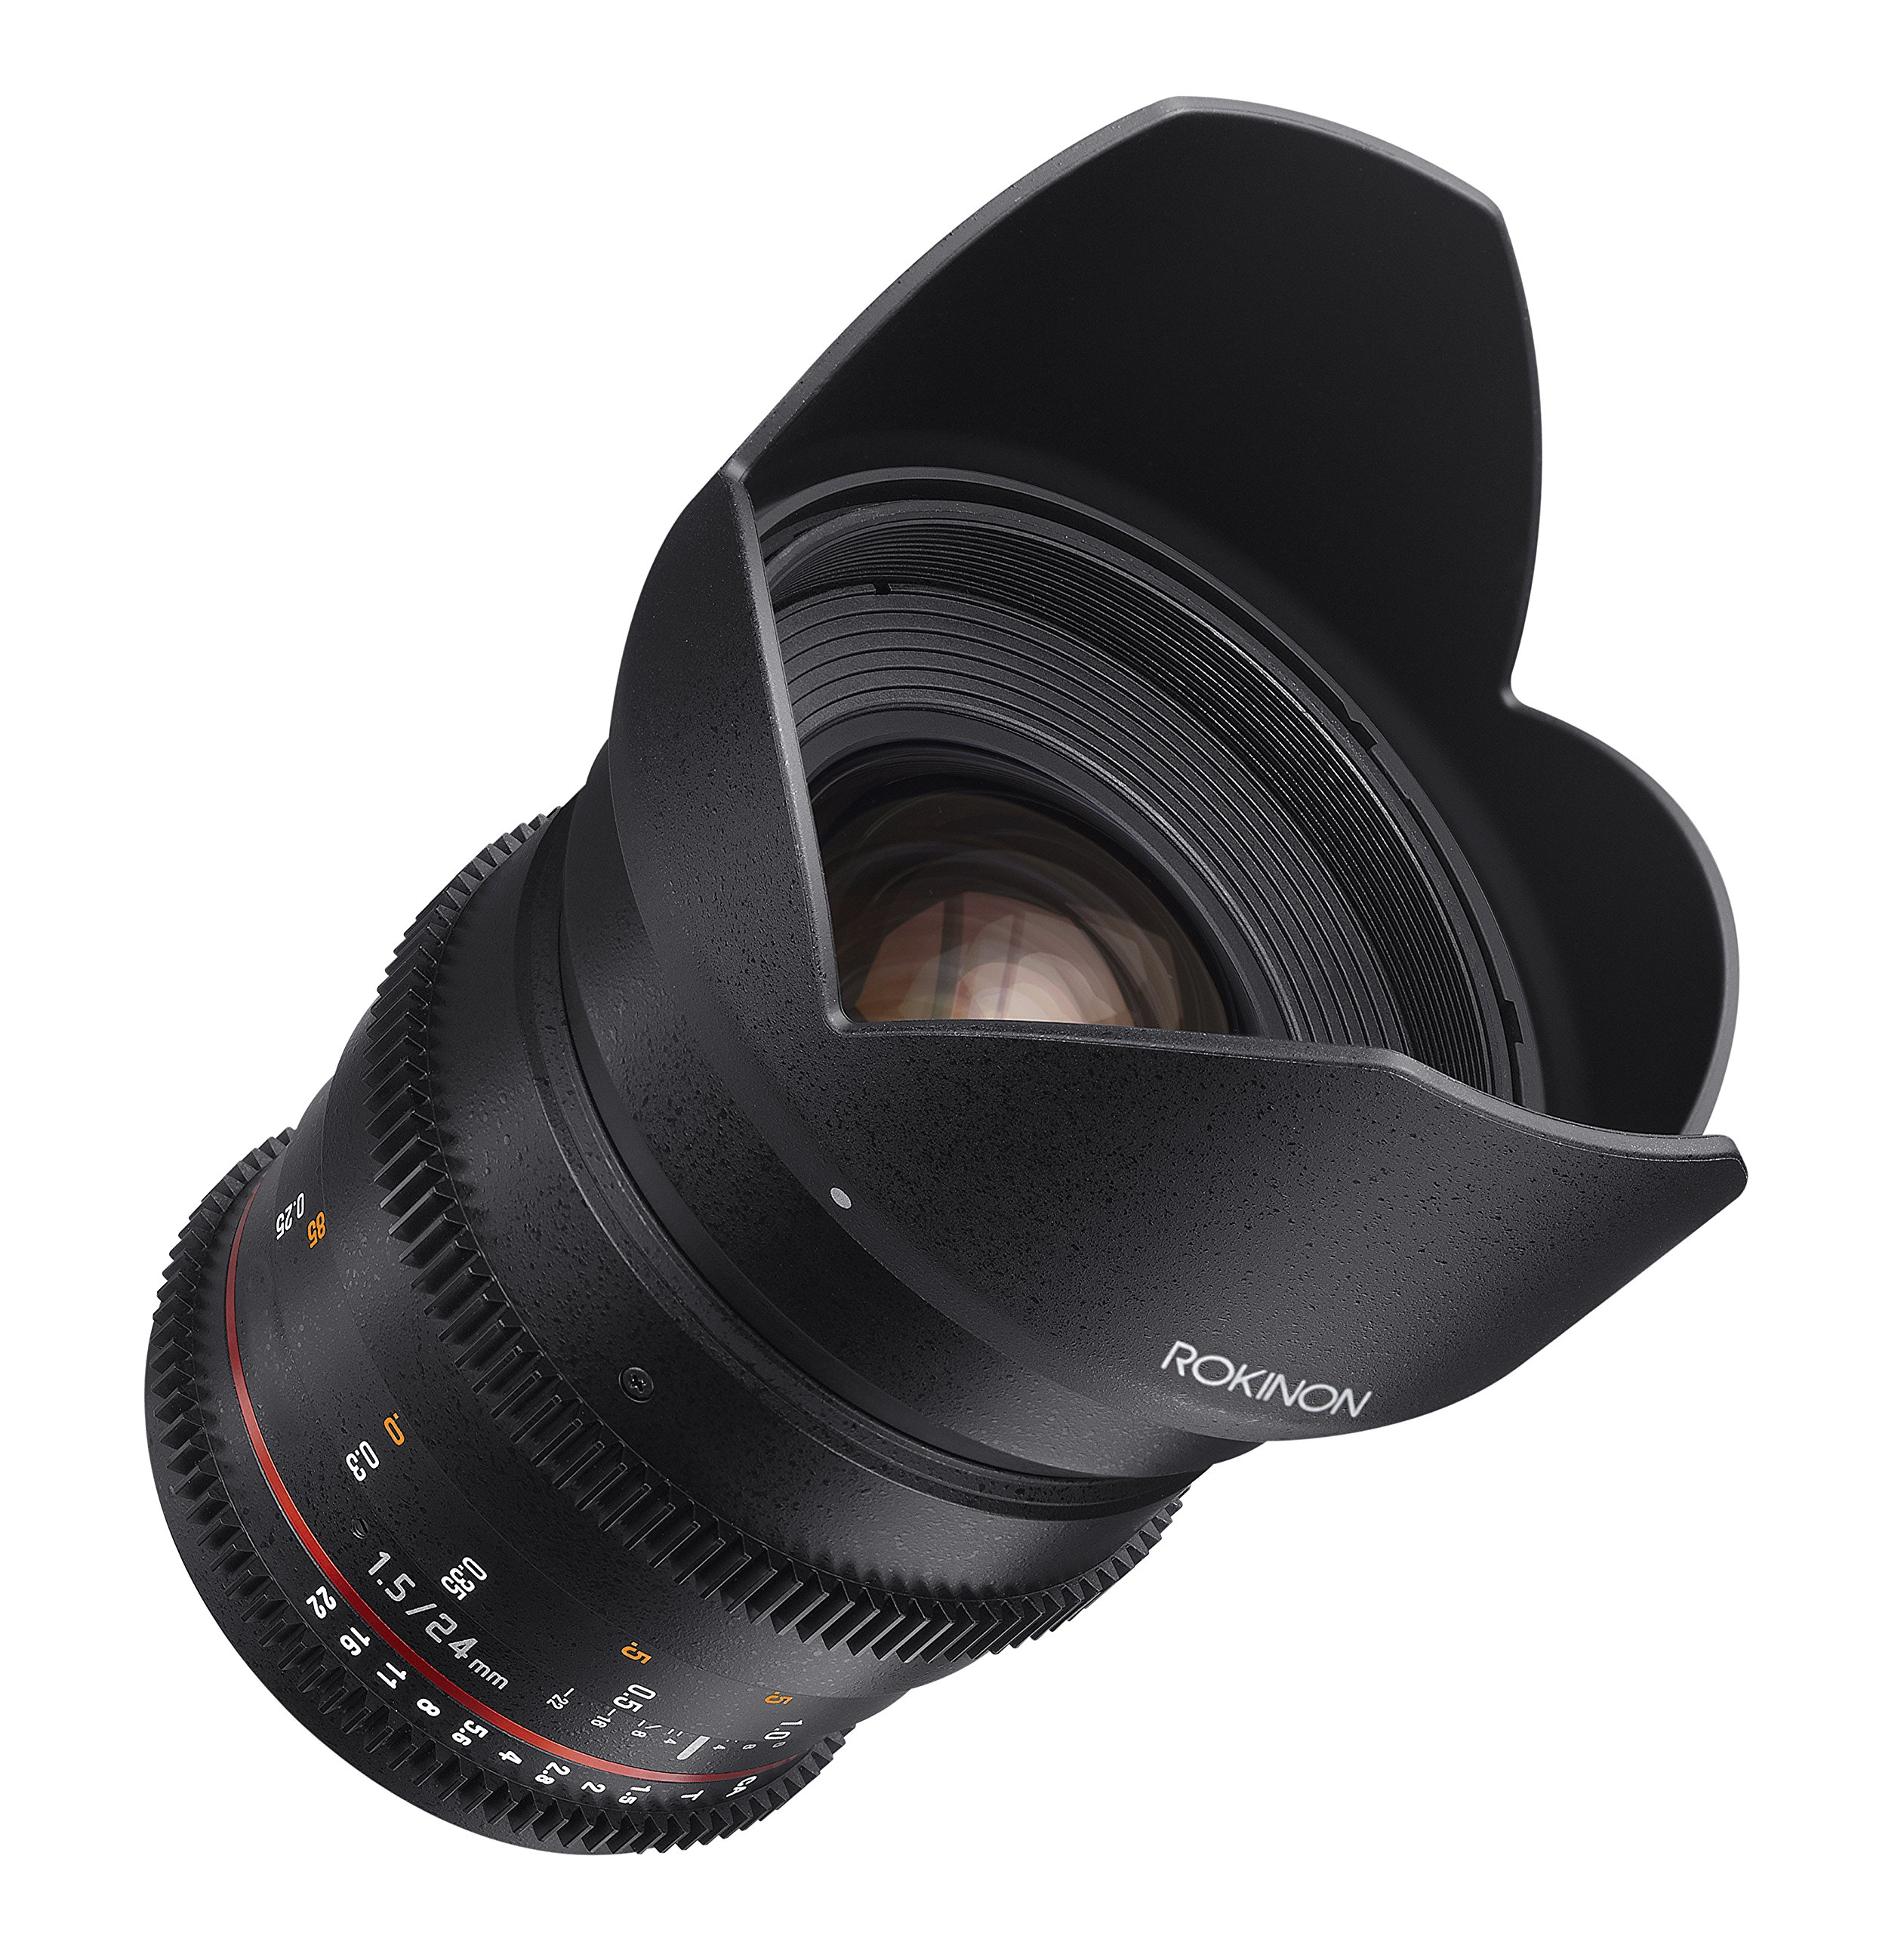 ROKINON 24mm T1.5/f1.4 Cine Wide-Angle Lens for Nikon Cameras